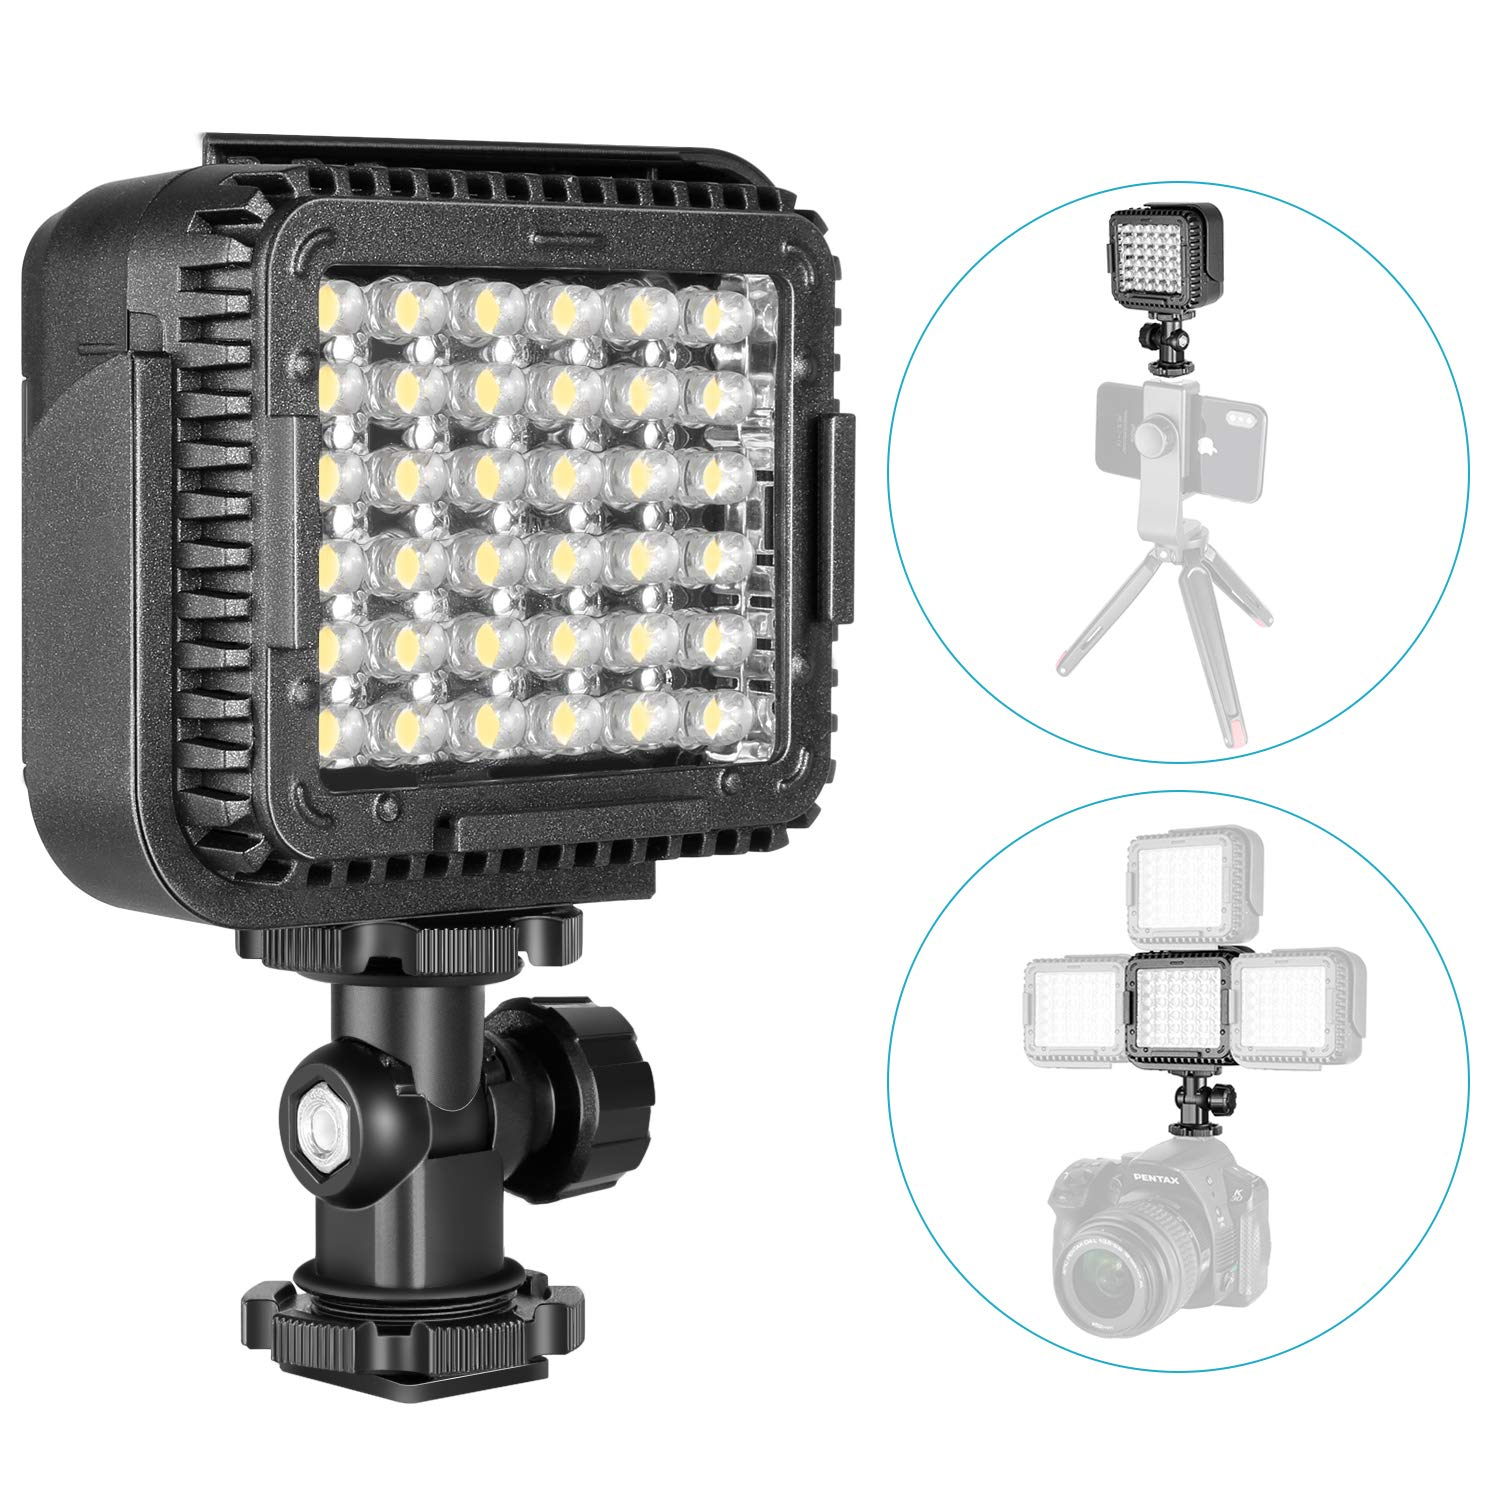 Neewer Ultra Bright Mini LED Video Light - 36 Dimmable High Power LED Panel Video Light Compatible with DJI Ronin-S OSMO Mobile 2 Zhiyun WEEBILL Smooth 4 Gimbal Canon Nikon Sony DSLR Cameras etc by Neewer